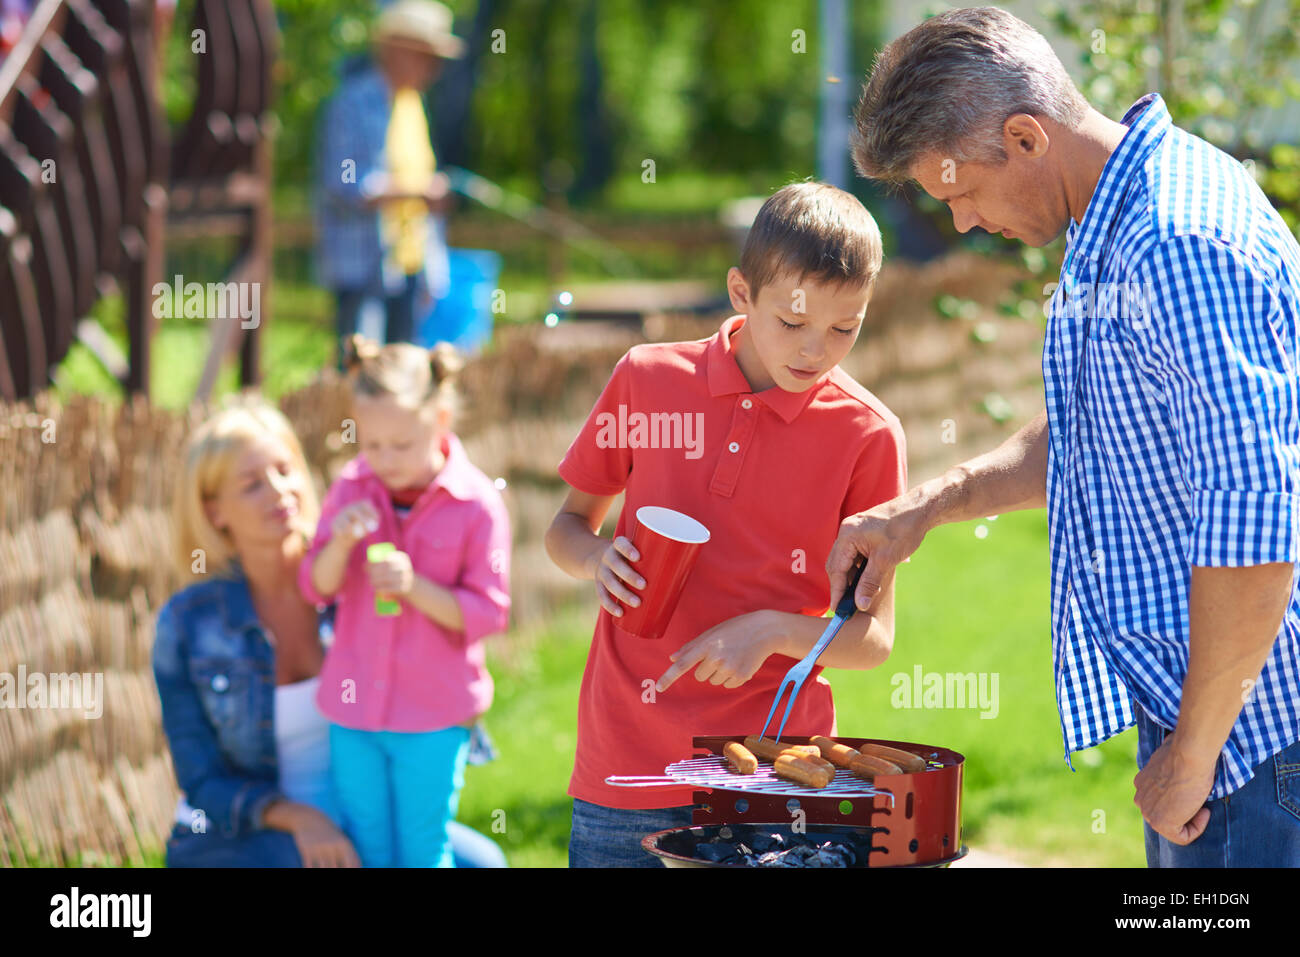 Father and son frying sausages at their gathering with family - Stock Image